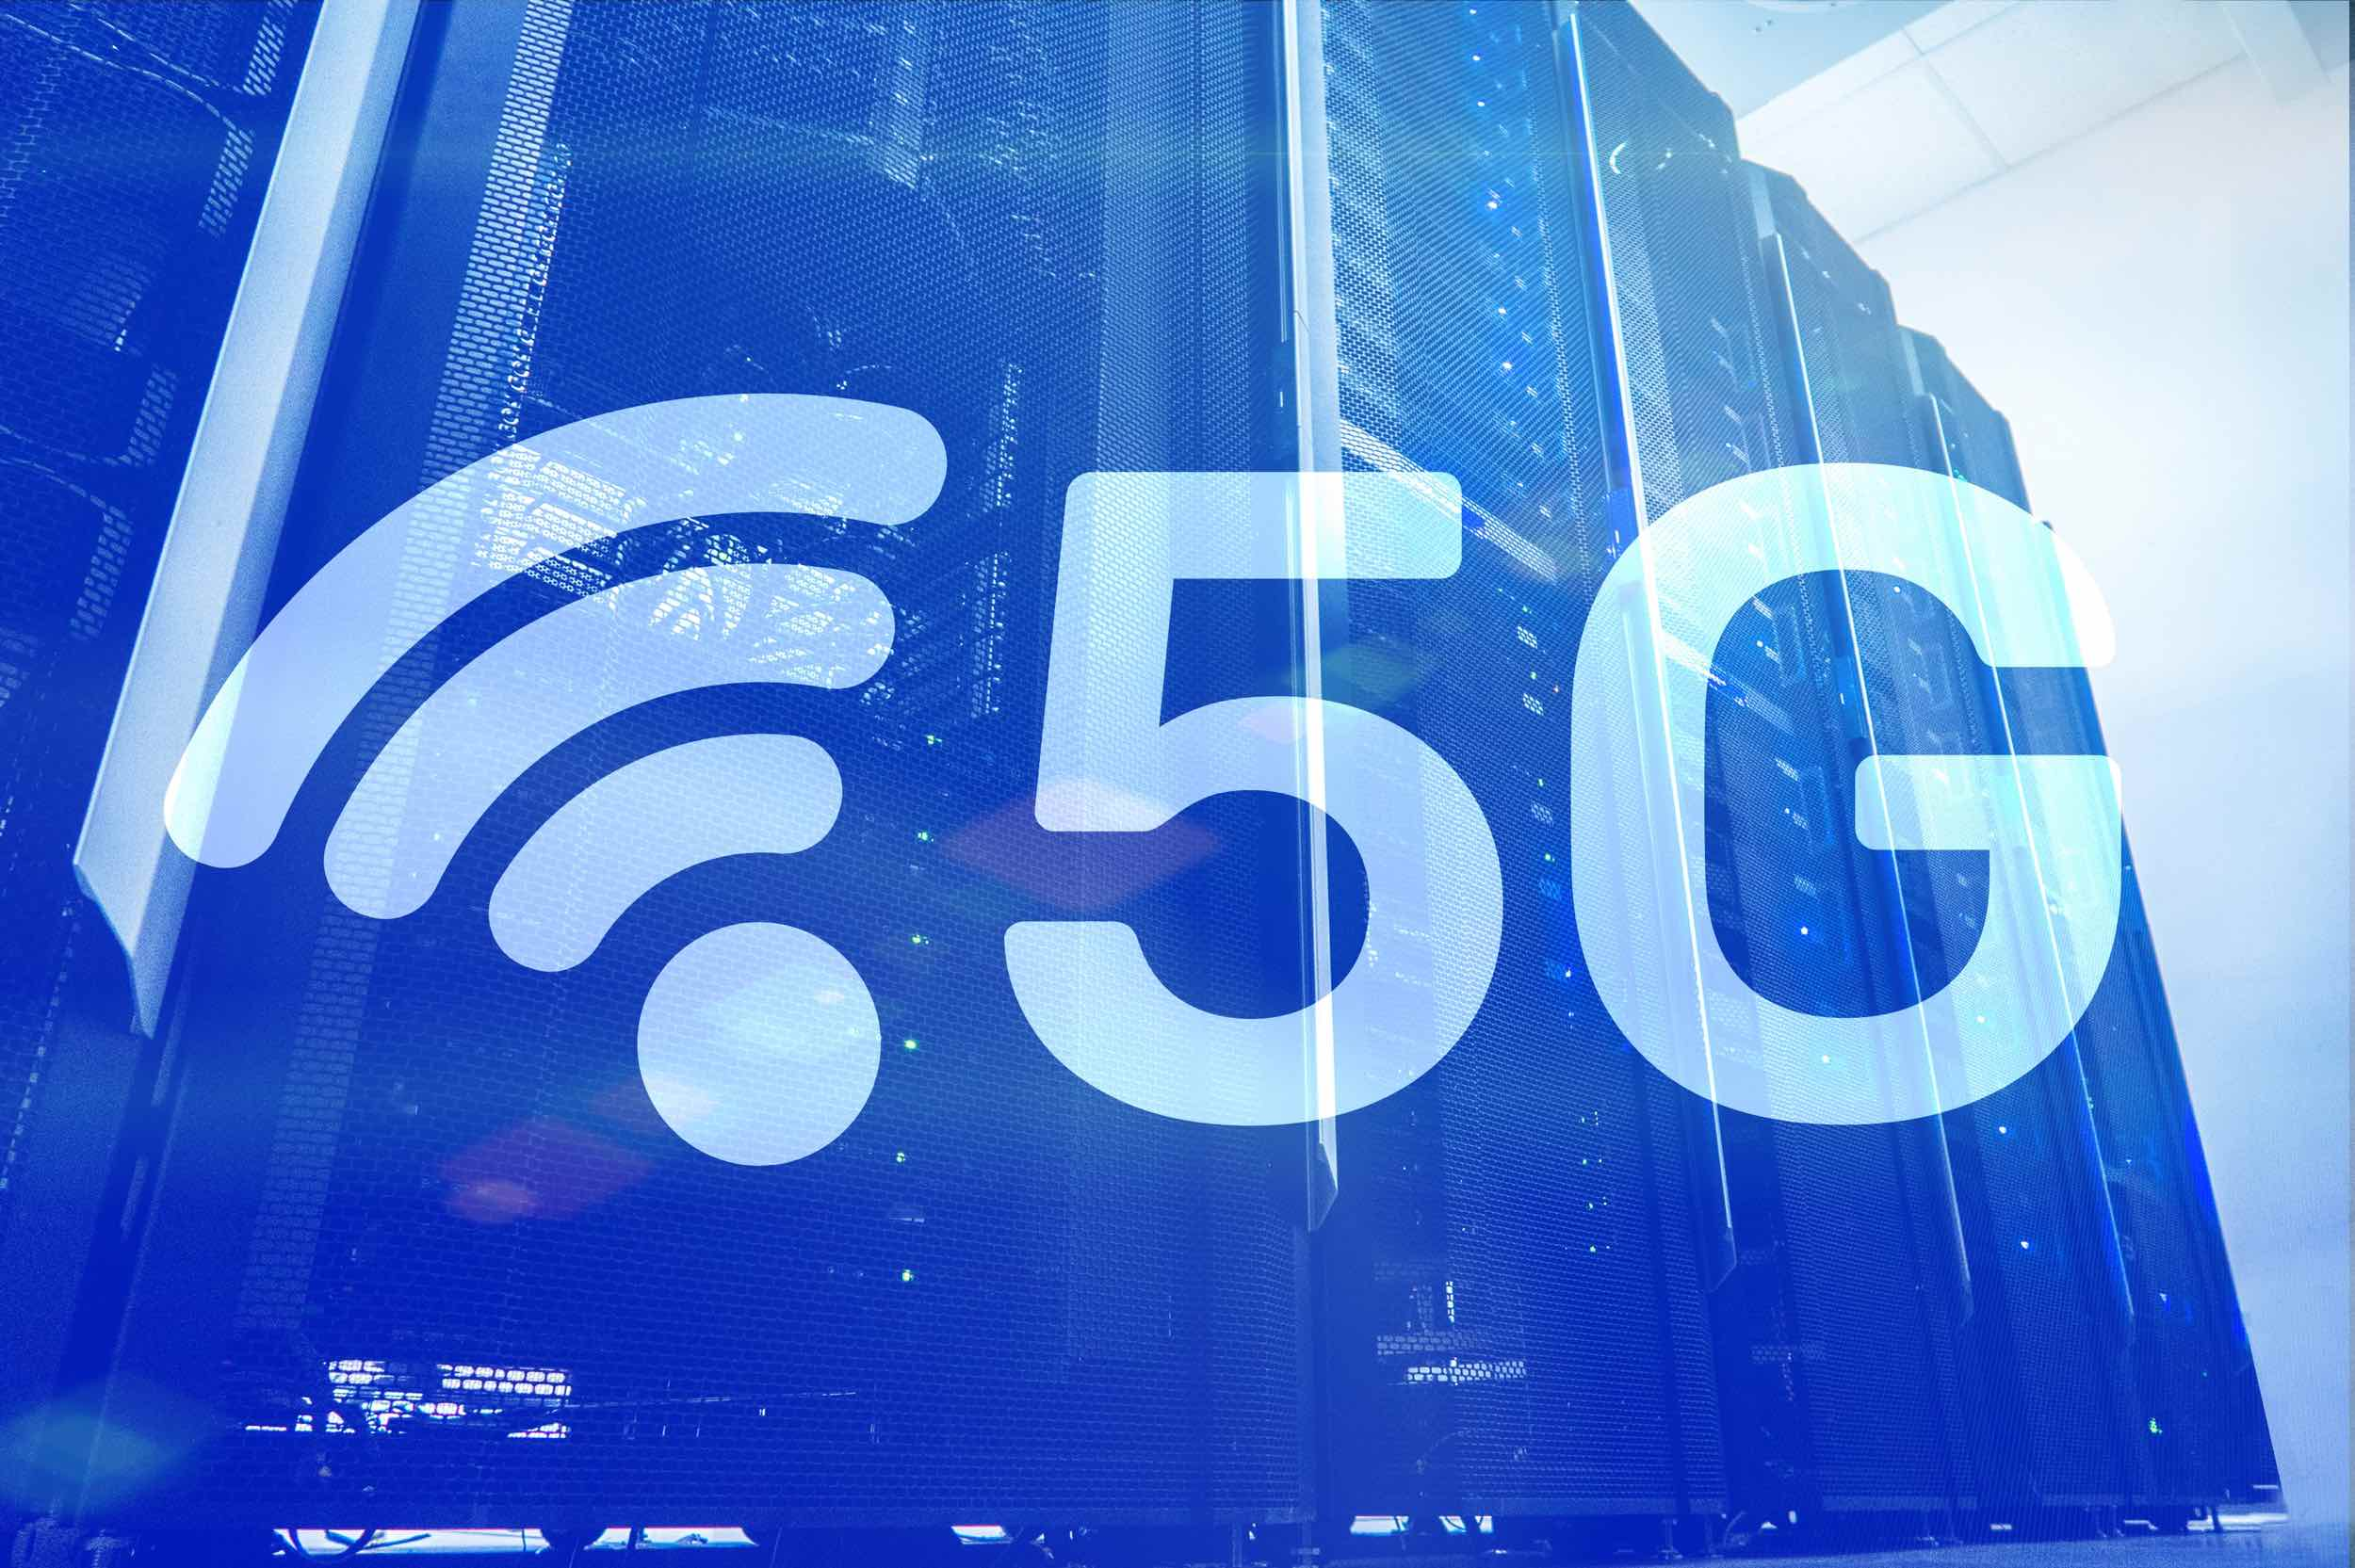 What options do 5G WAN services bring to business?